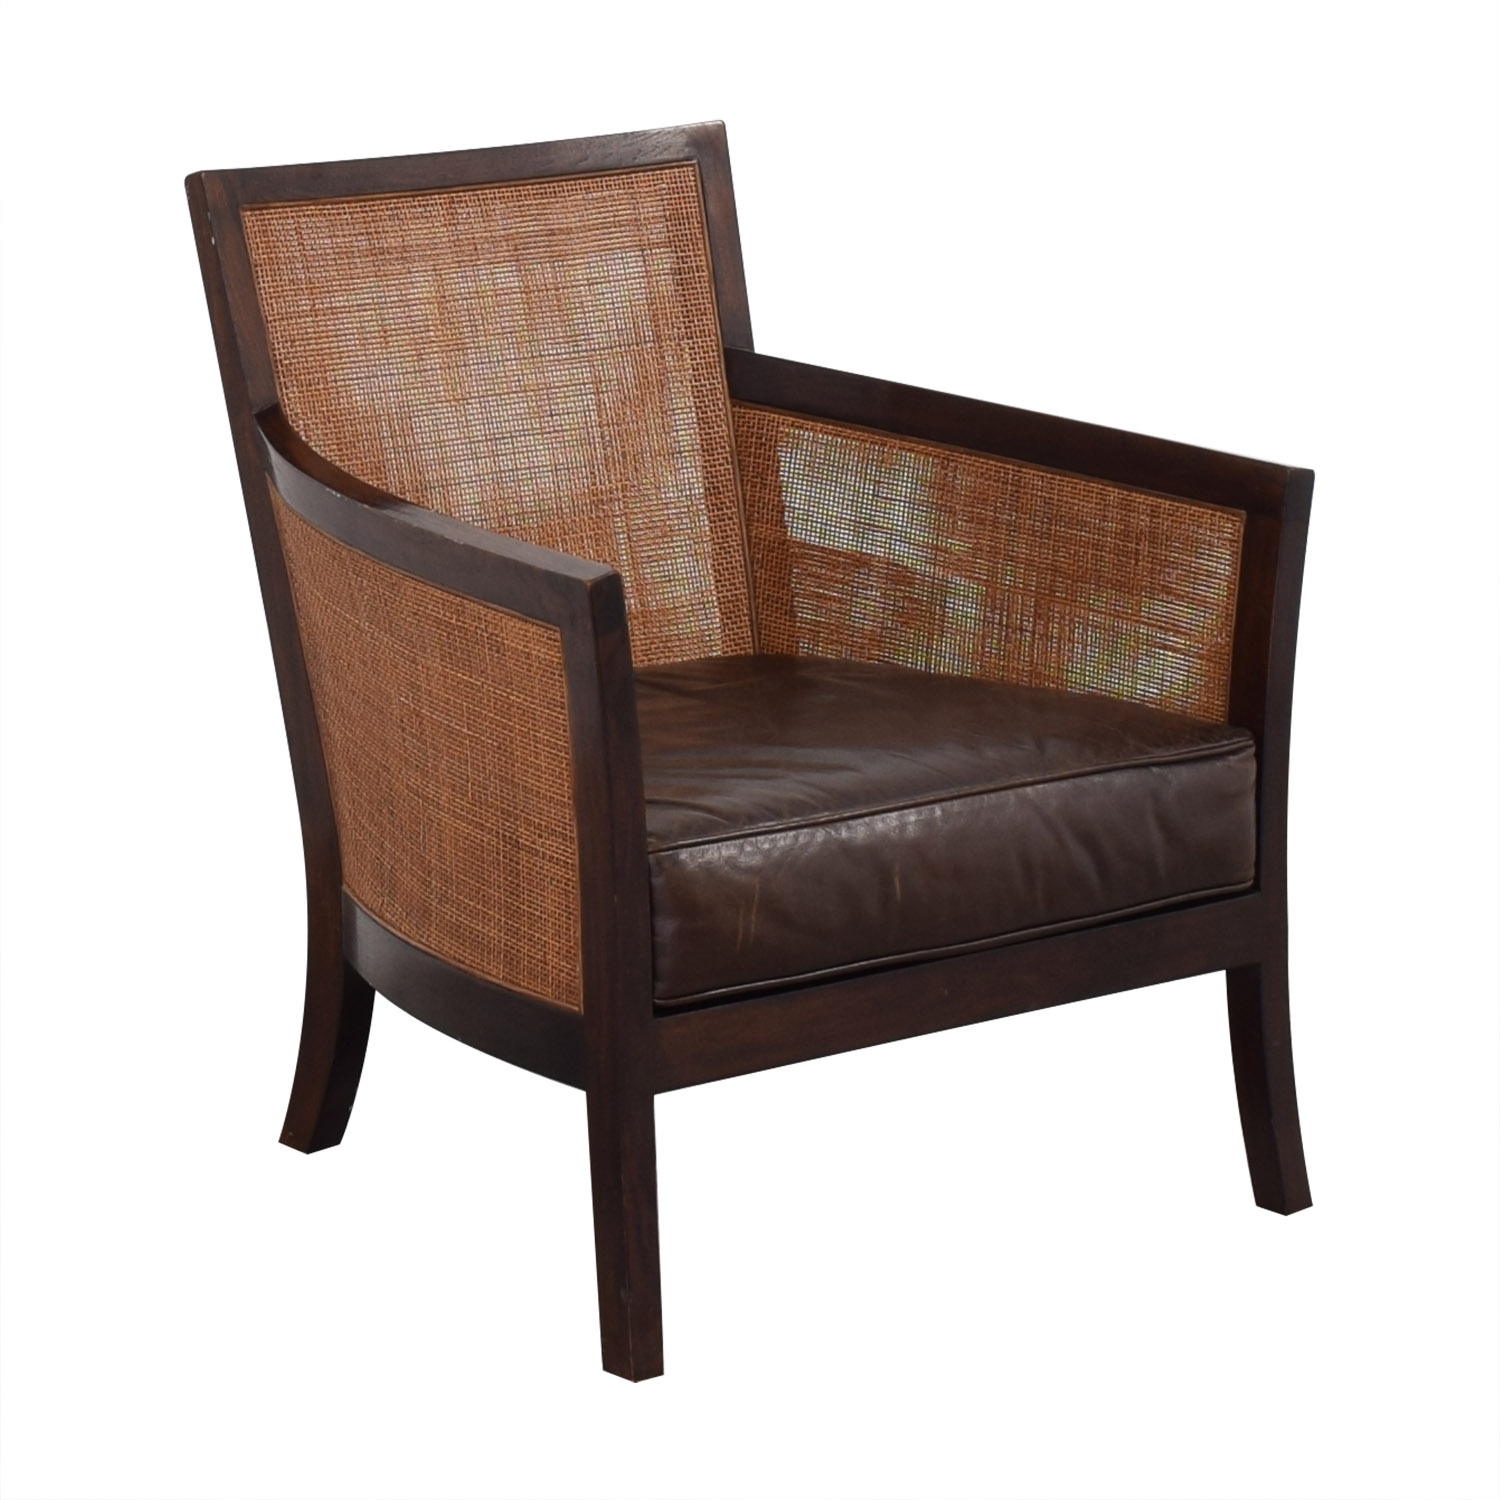 Crate & Barrel Crate & Barrel Blake Lounge Chair & Ottoman Accent Chairs